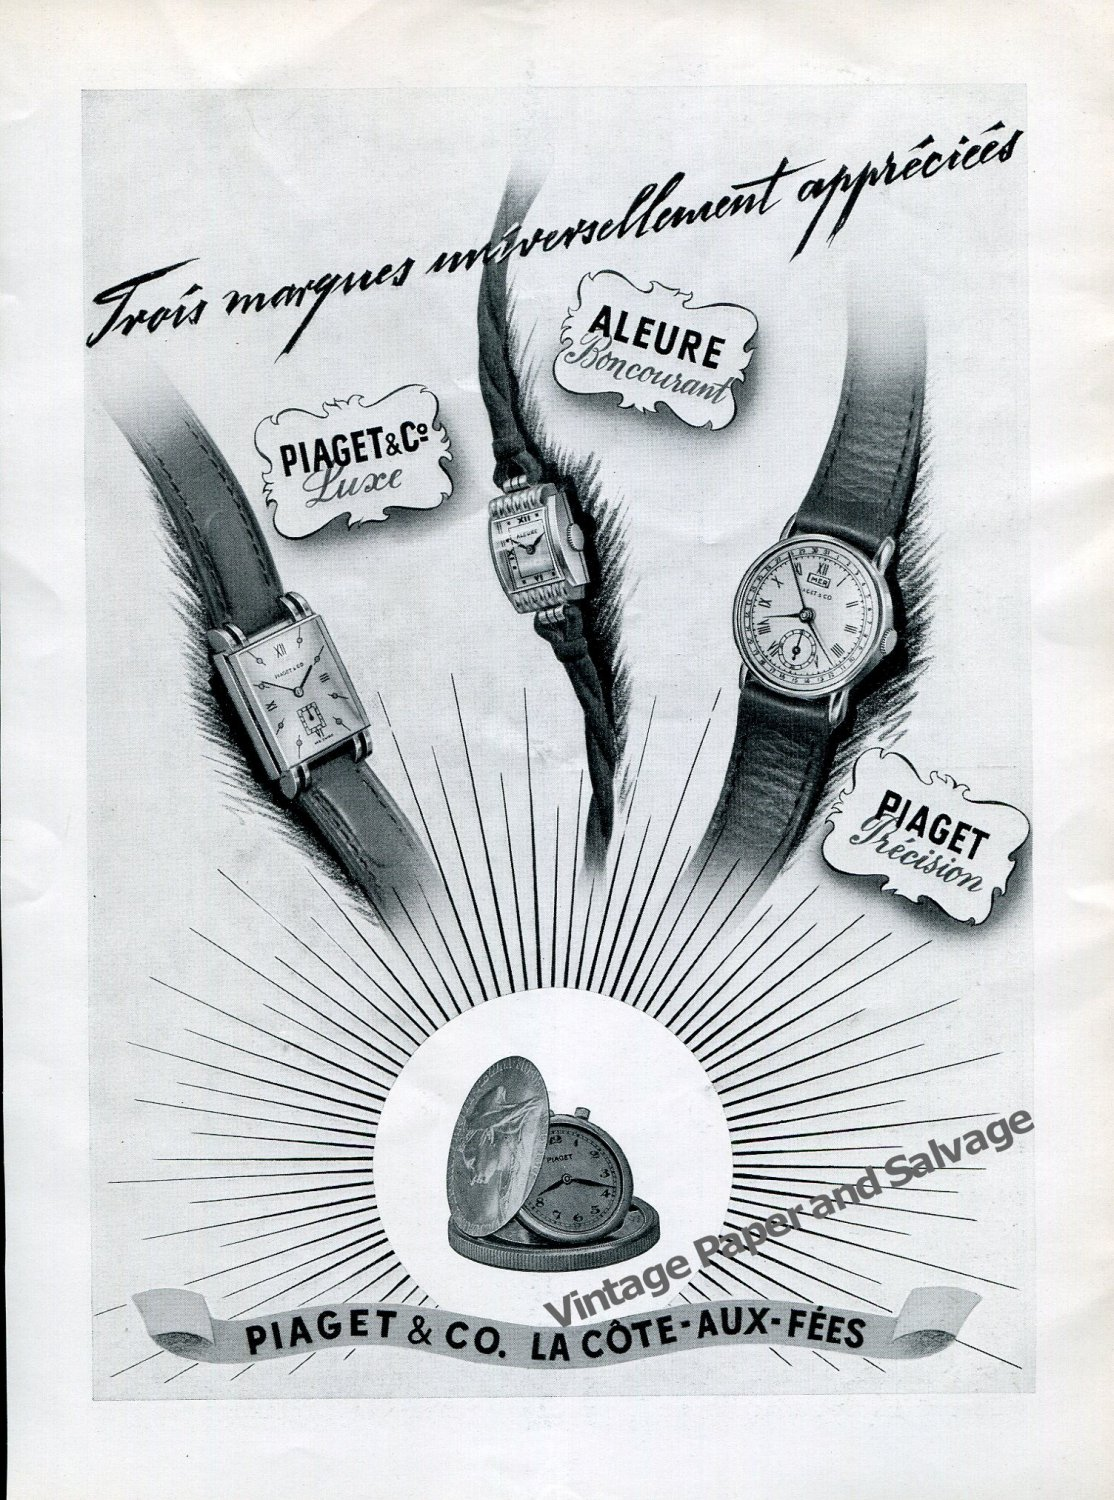 Vintage 1942 Piaget & Co La Cote-Aux-Fees Switzerland 1940s Swiss Ad Advert Suisse